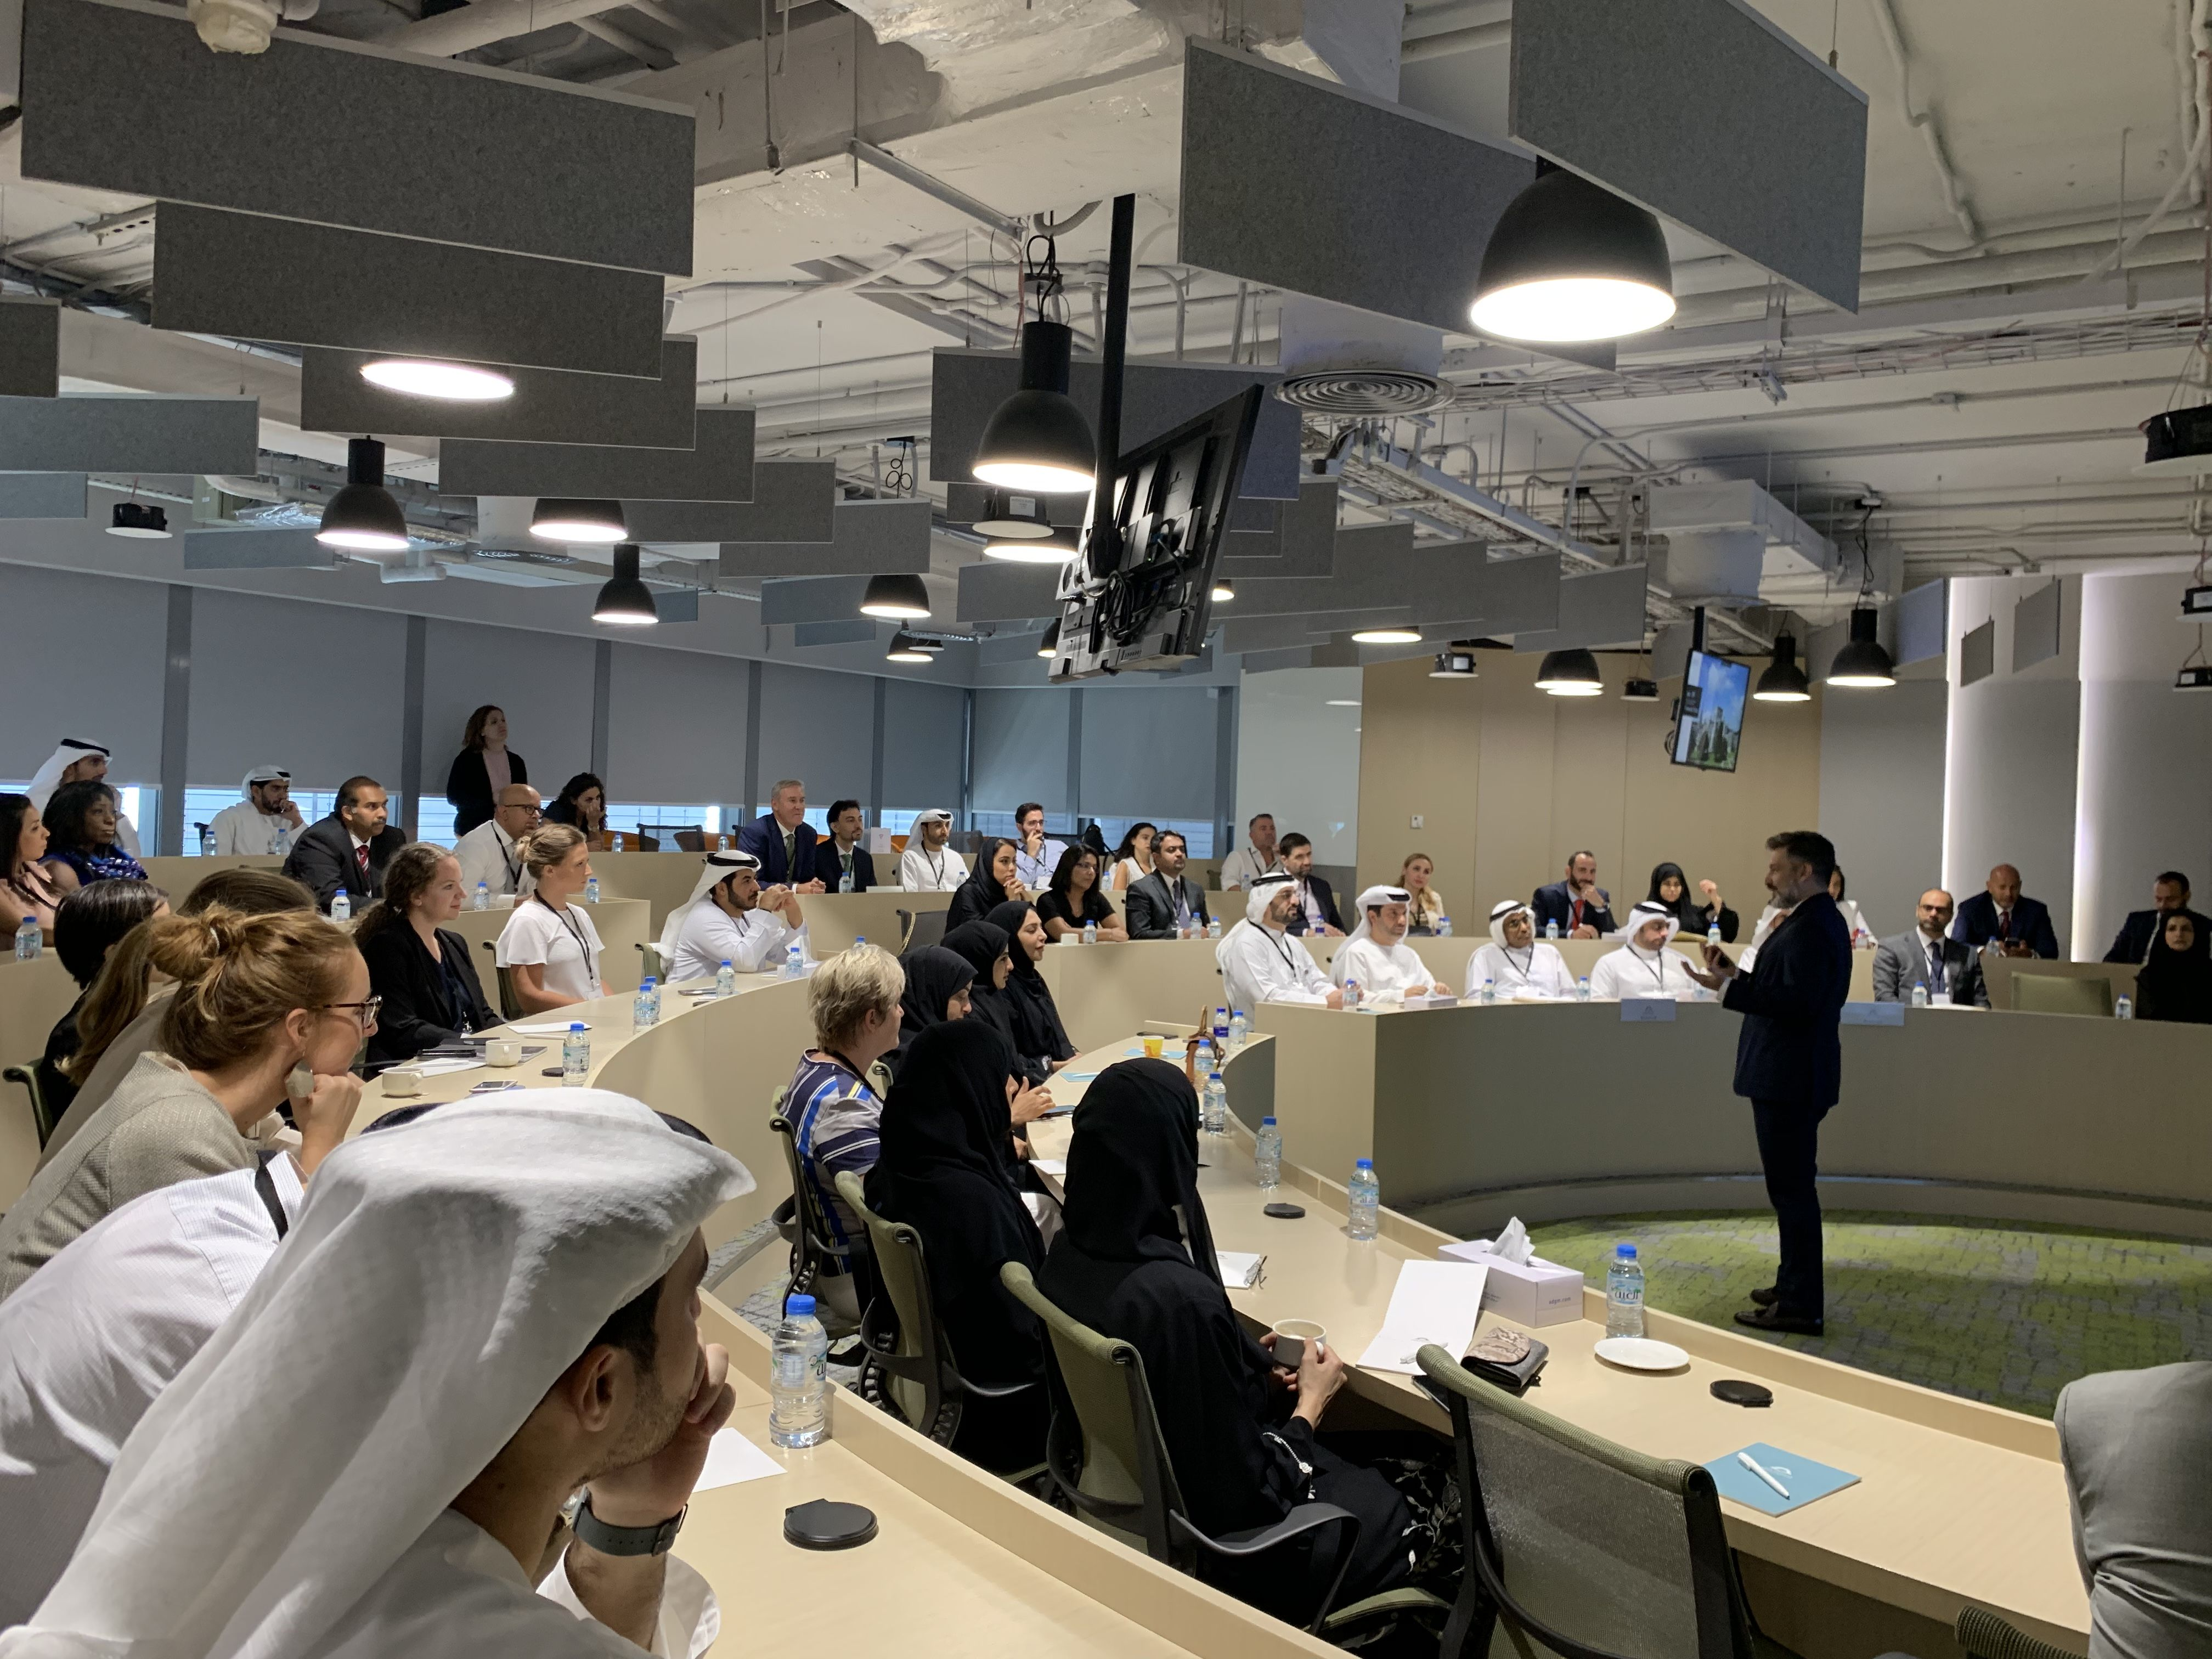 Full conference room in Abu Dhabi